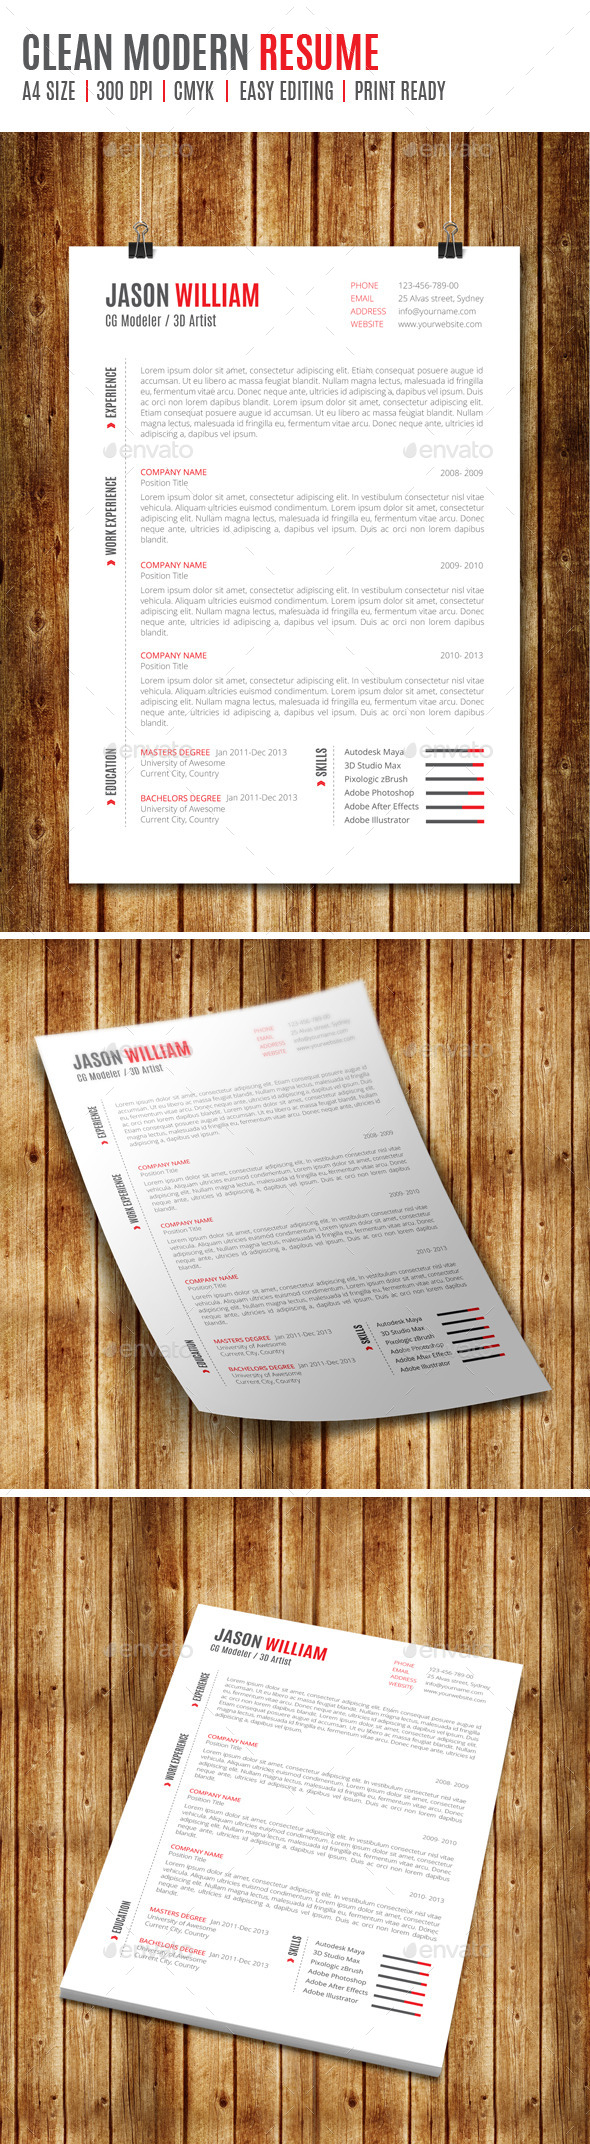 GraphicRiver Clean Modern Resume 8957947